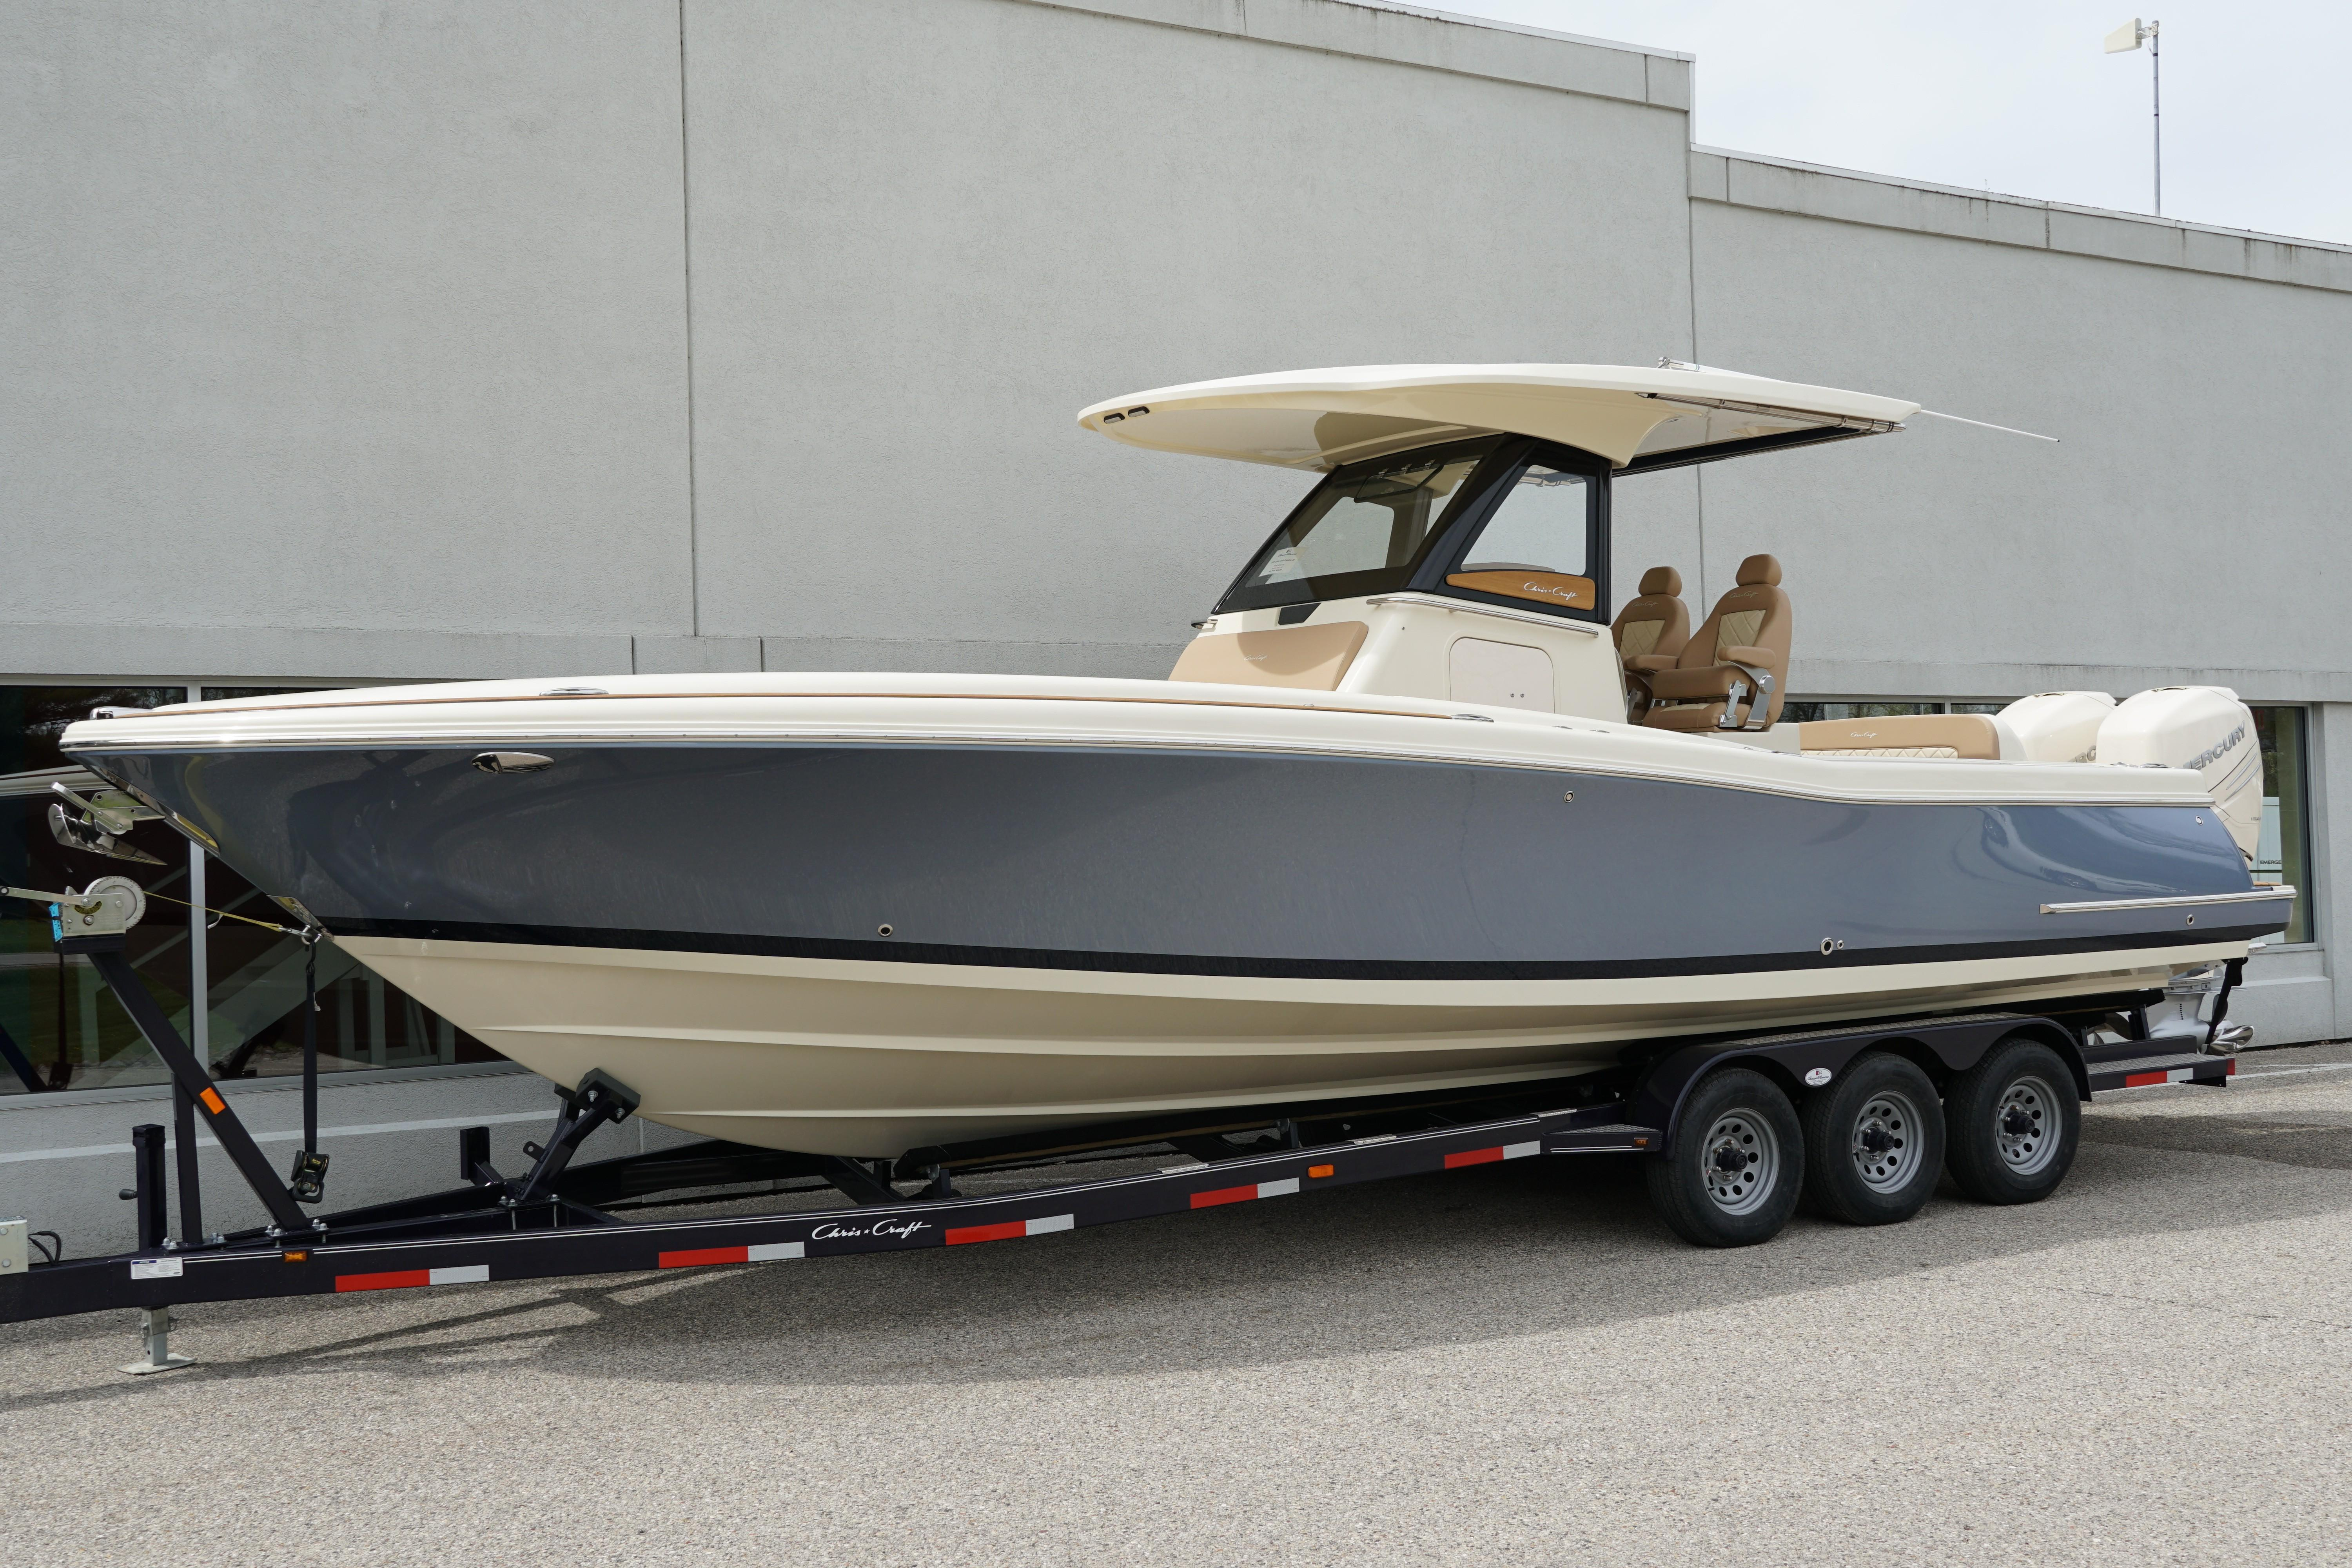 2019 Chris-Craft Catalina 30 Williams Bay, Wisconsin - Gage